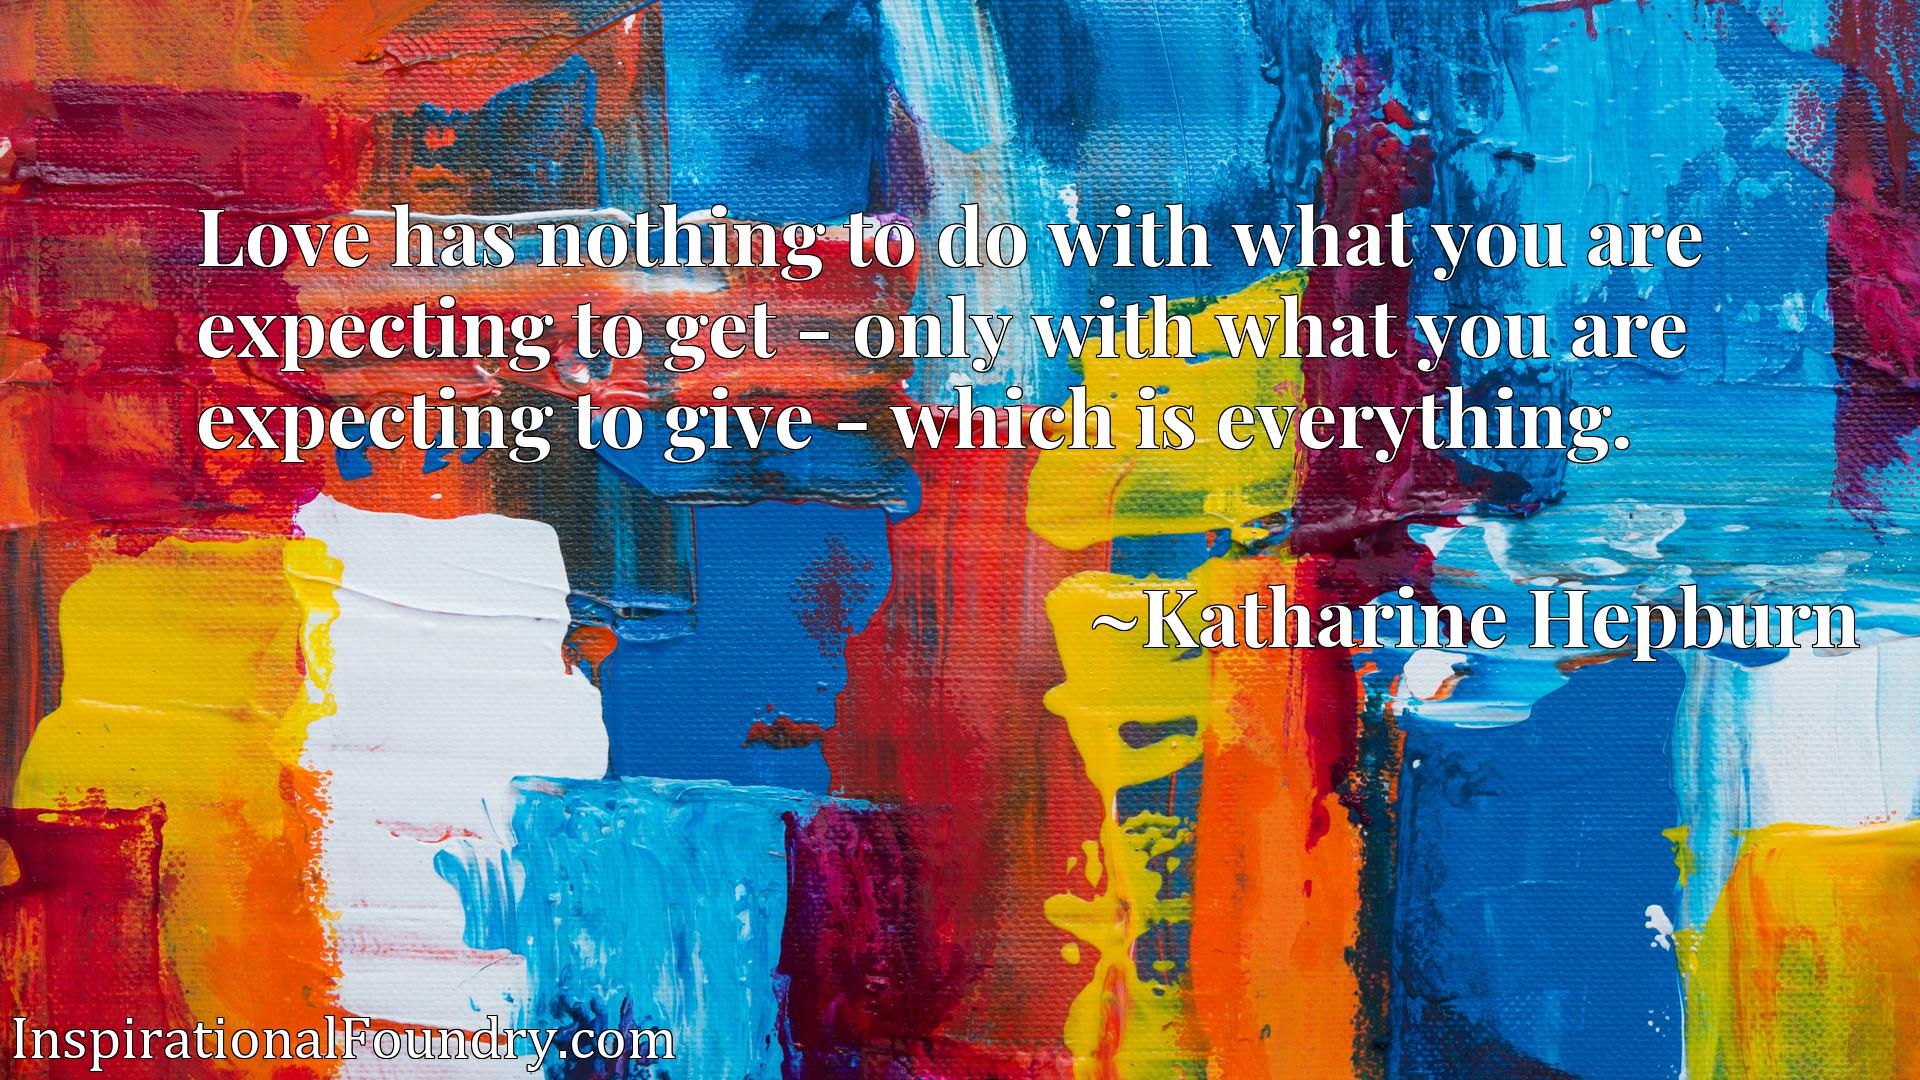 Love has nothing to do with what you are expecting to get - only with what you are expecting to give - which is everything.